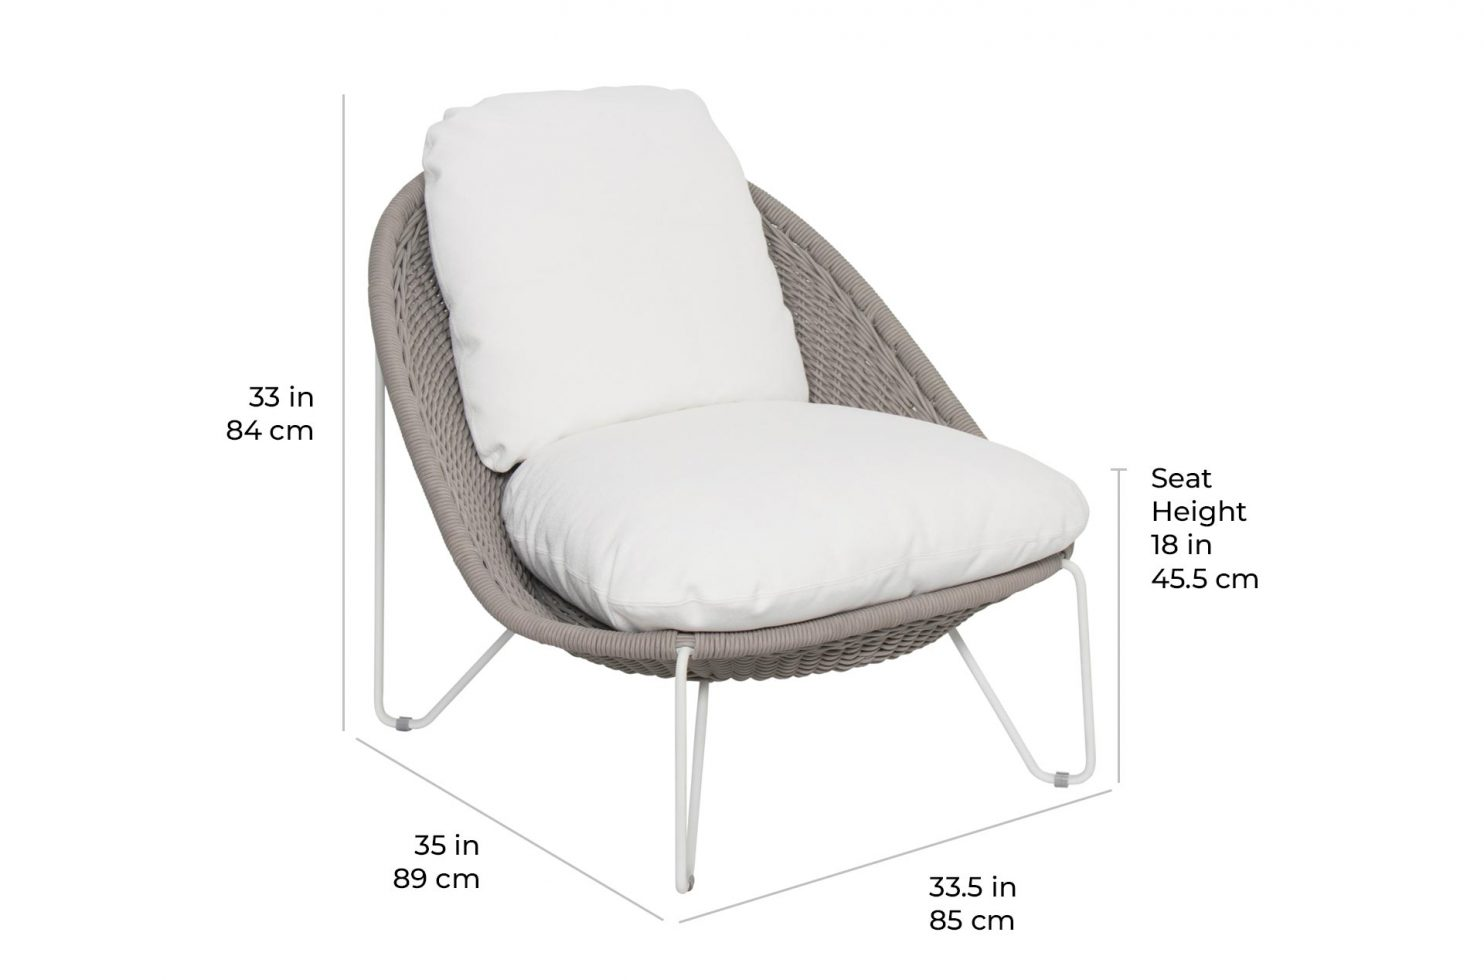 arch aegean lounge chair 620FT020P2 scale dims